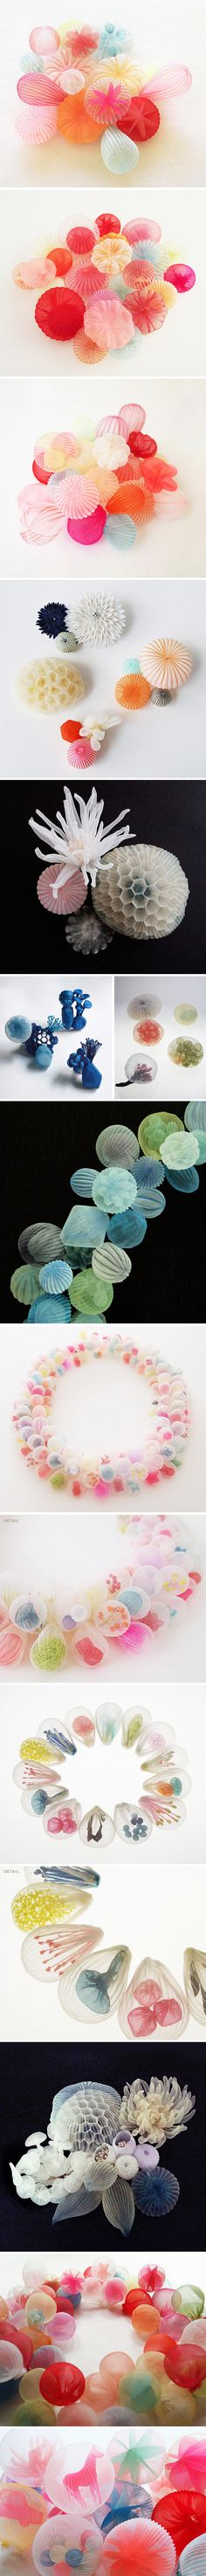 mariko kusumoto ... sculpture / fabric / jewelry ?!?! <3